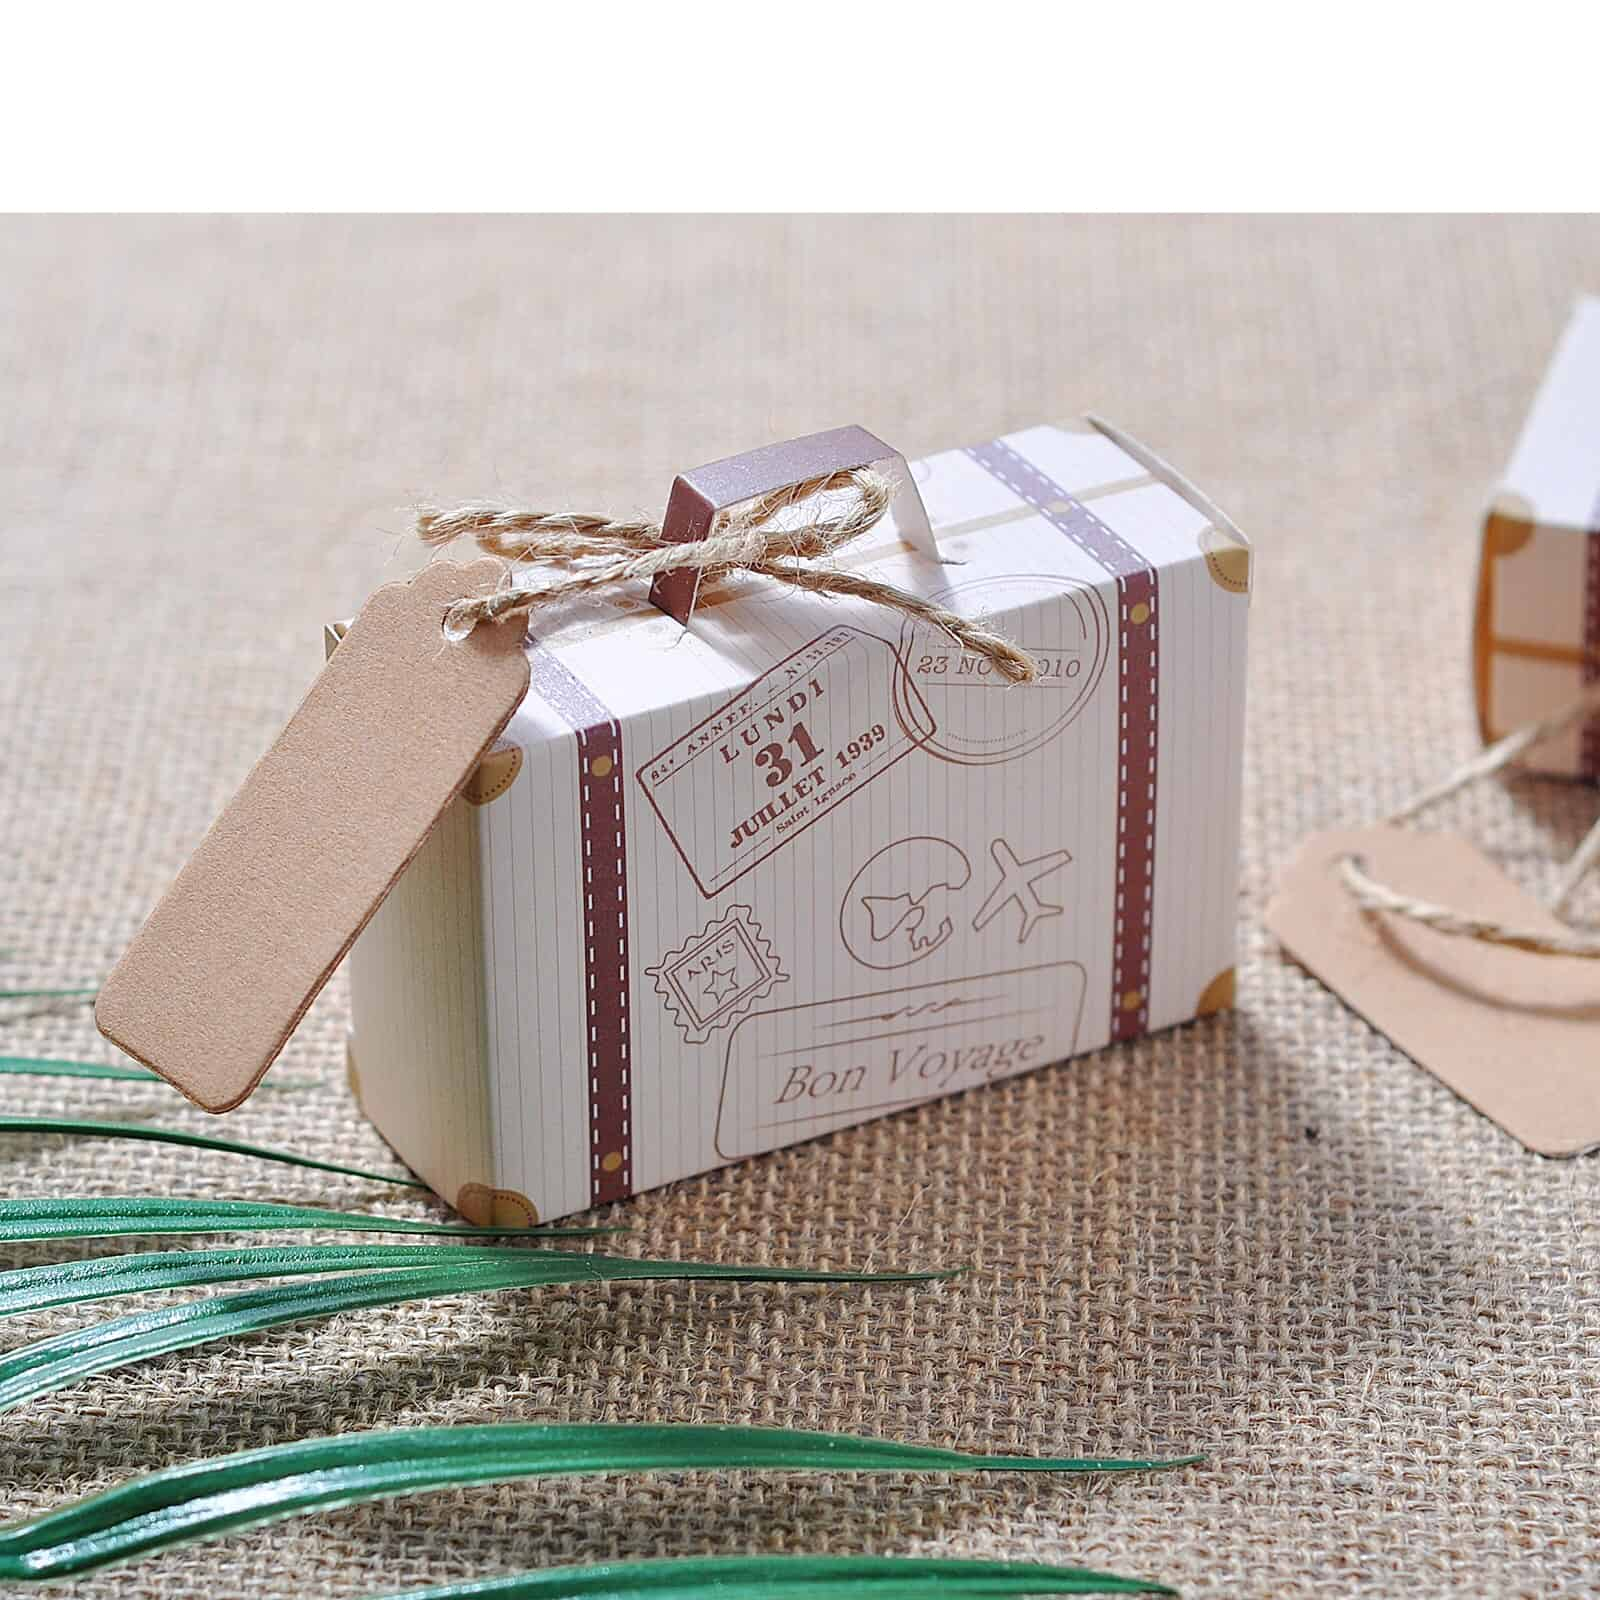 100pcs Suitcase Candy Box Bonbonniere Wedding Gift Bags Travel Themed Party Favors Anniversary Birthday Baby Shower Decoration